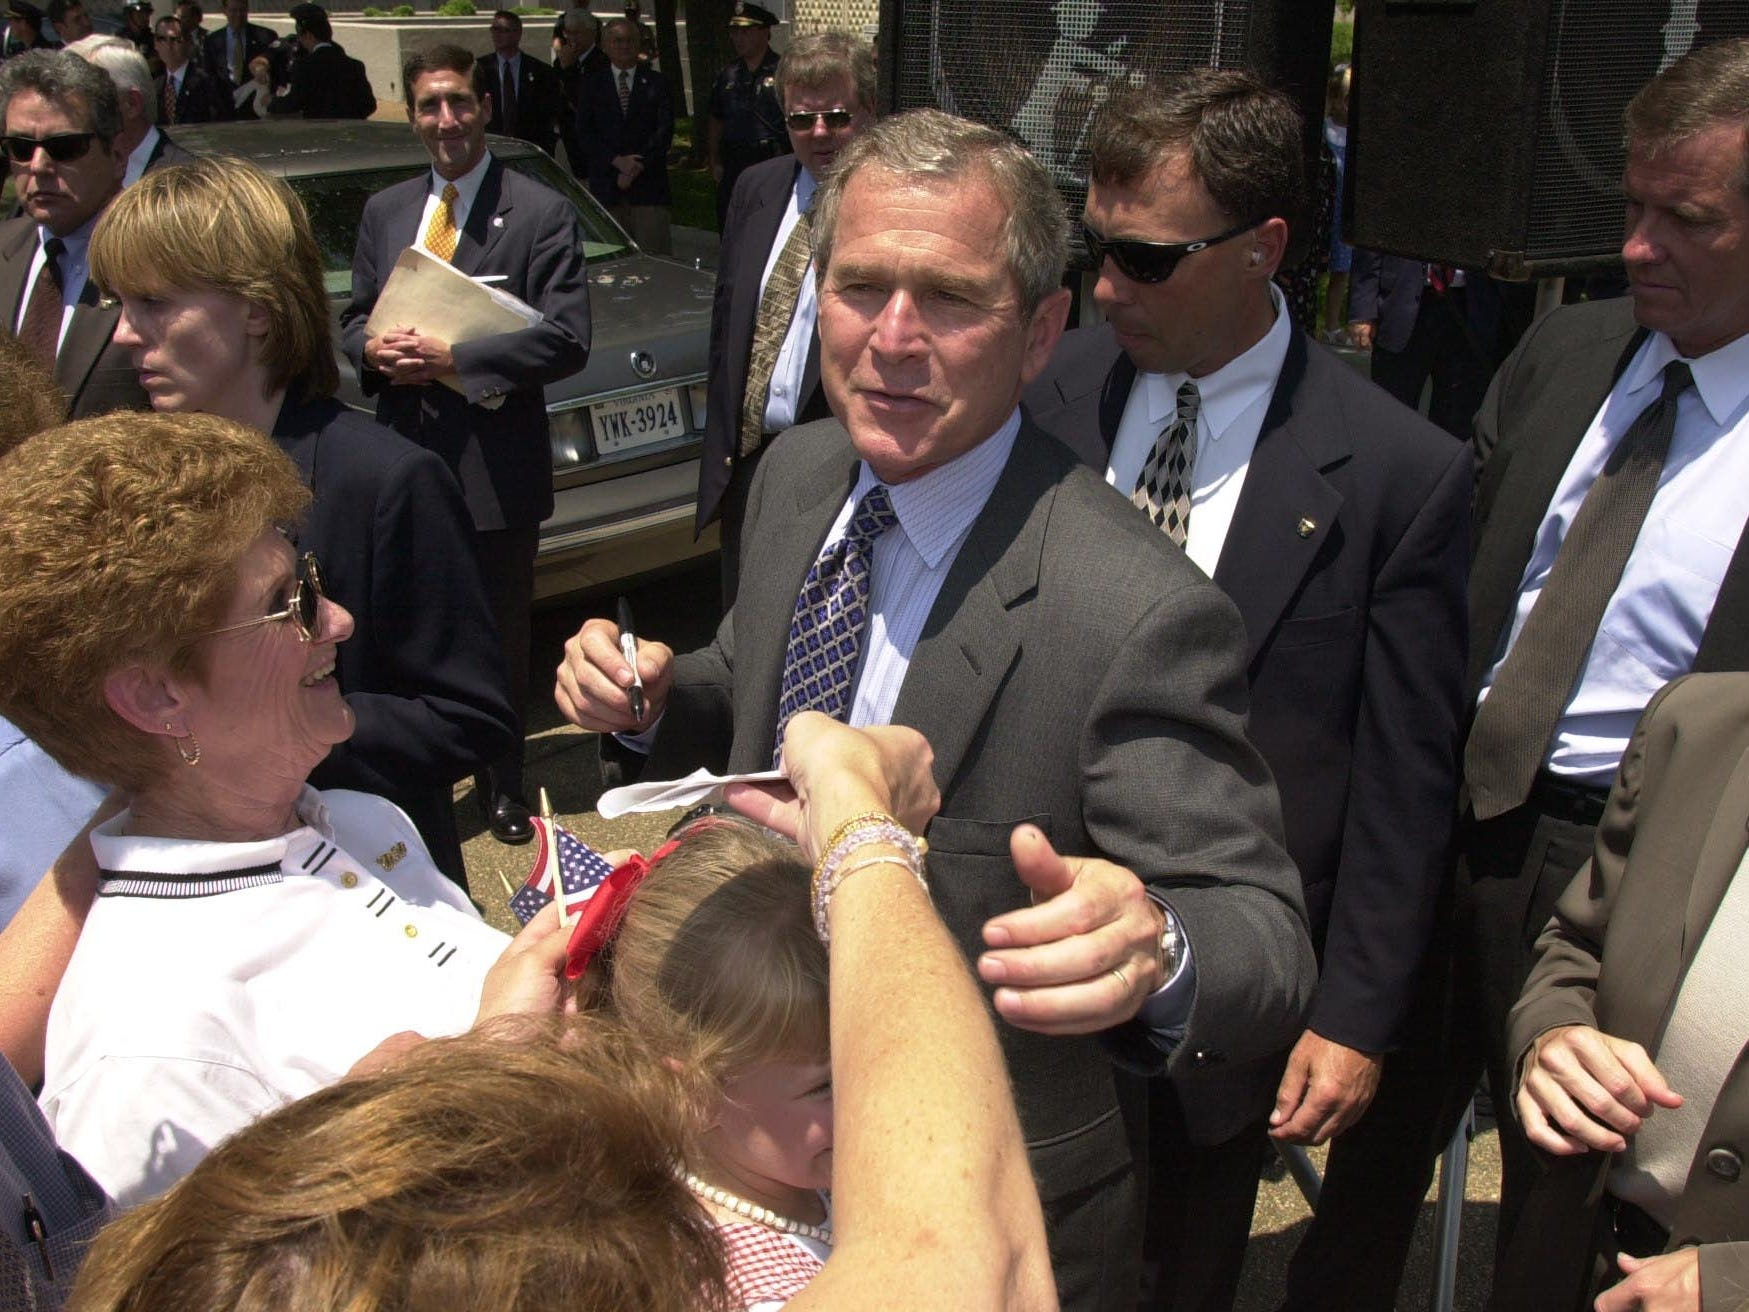 Texas Governor George W. Bush talks to supporters and signs autographs during his 2000 campaign stop Thursday at the Civic Auditorium Plaza in Knoxville.